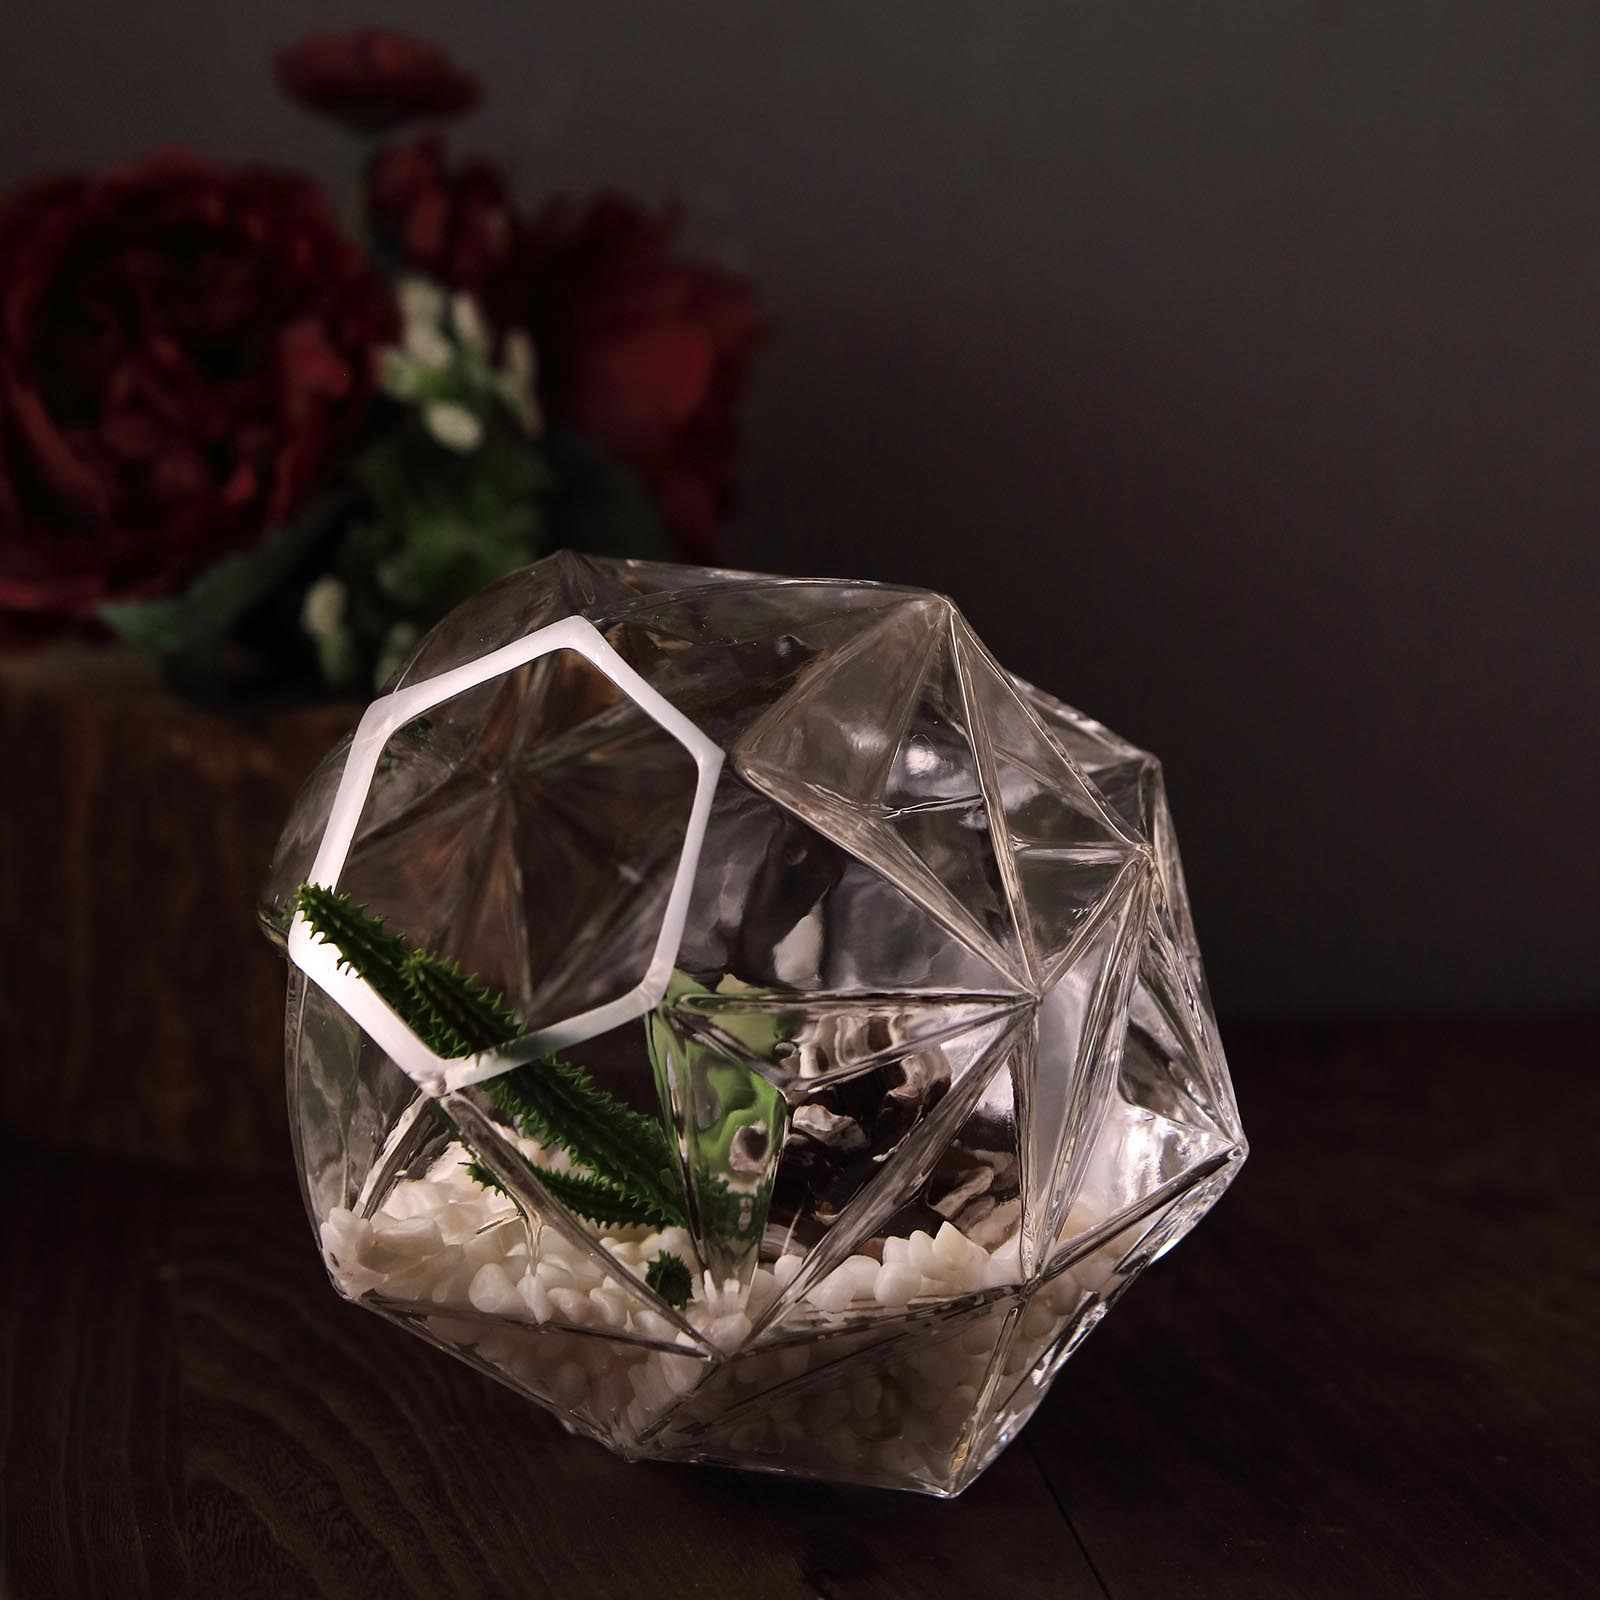 2 Pcs 7 Inch Tall Clear Glass Honeycomb Geometric Terrarium Centerpiece Vases Ebay